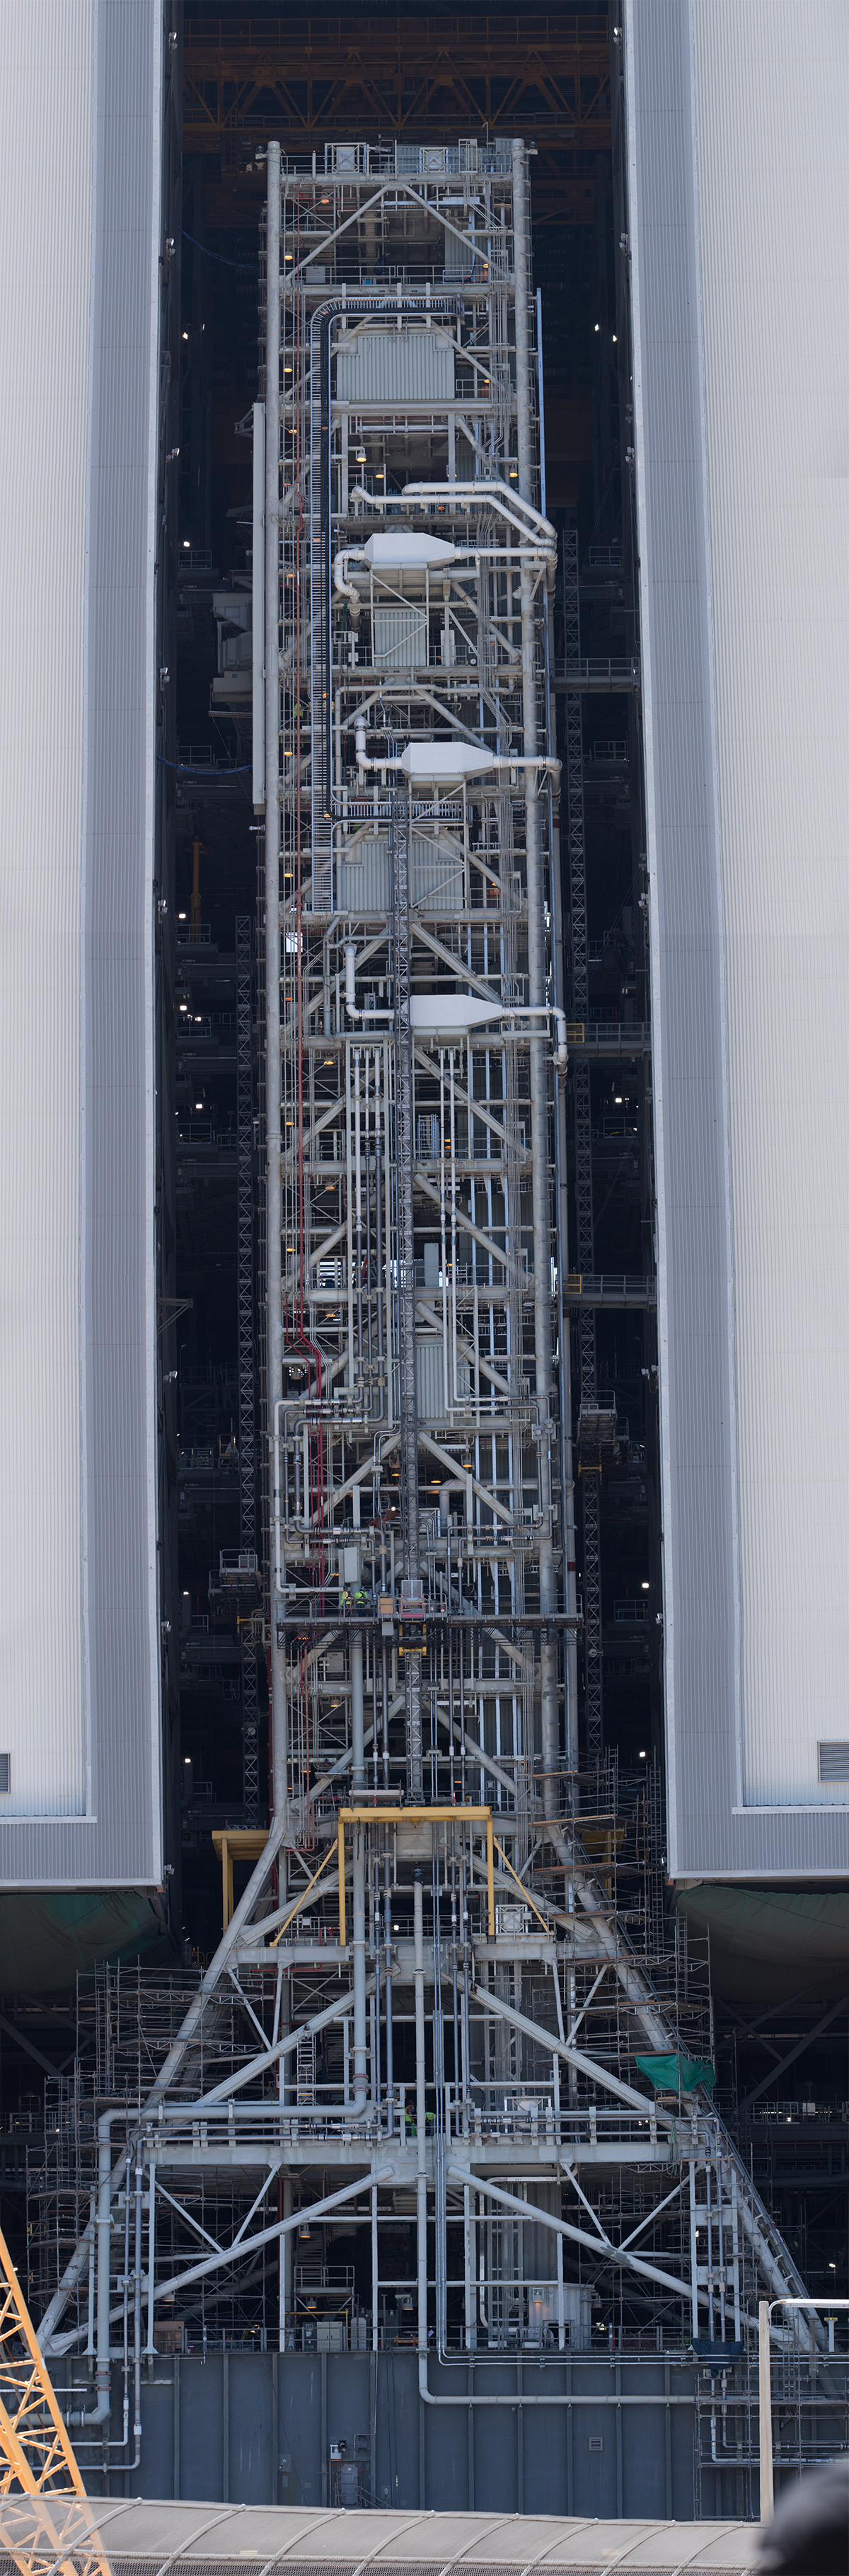 An incredibly detailed view of the Mobile Launcher